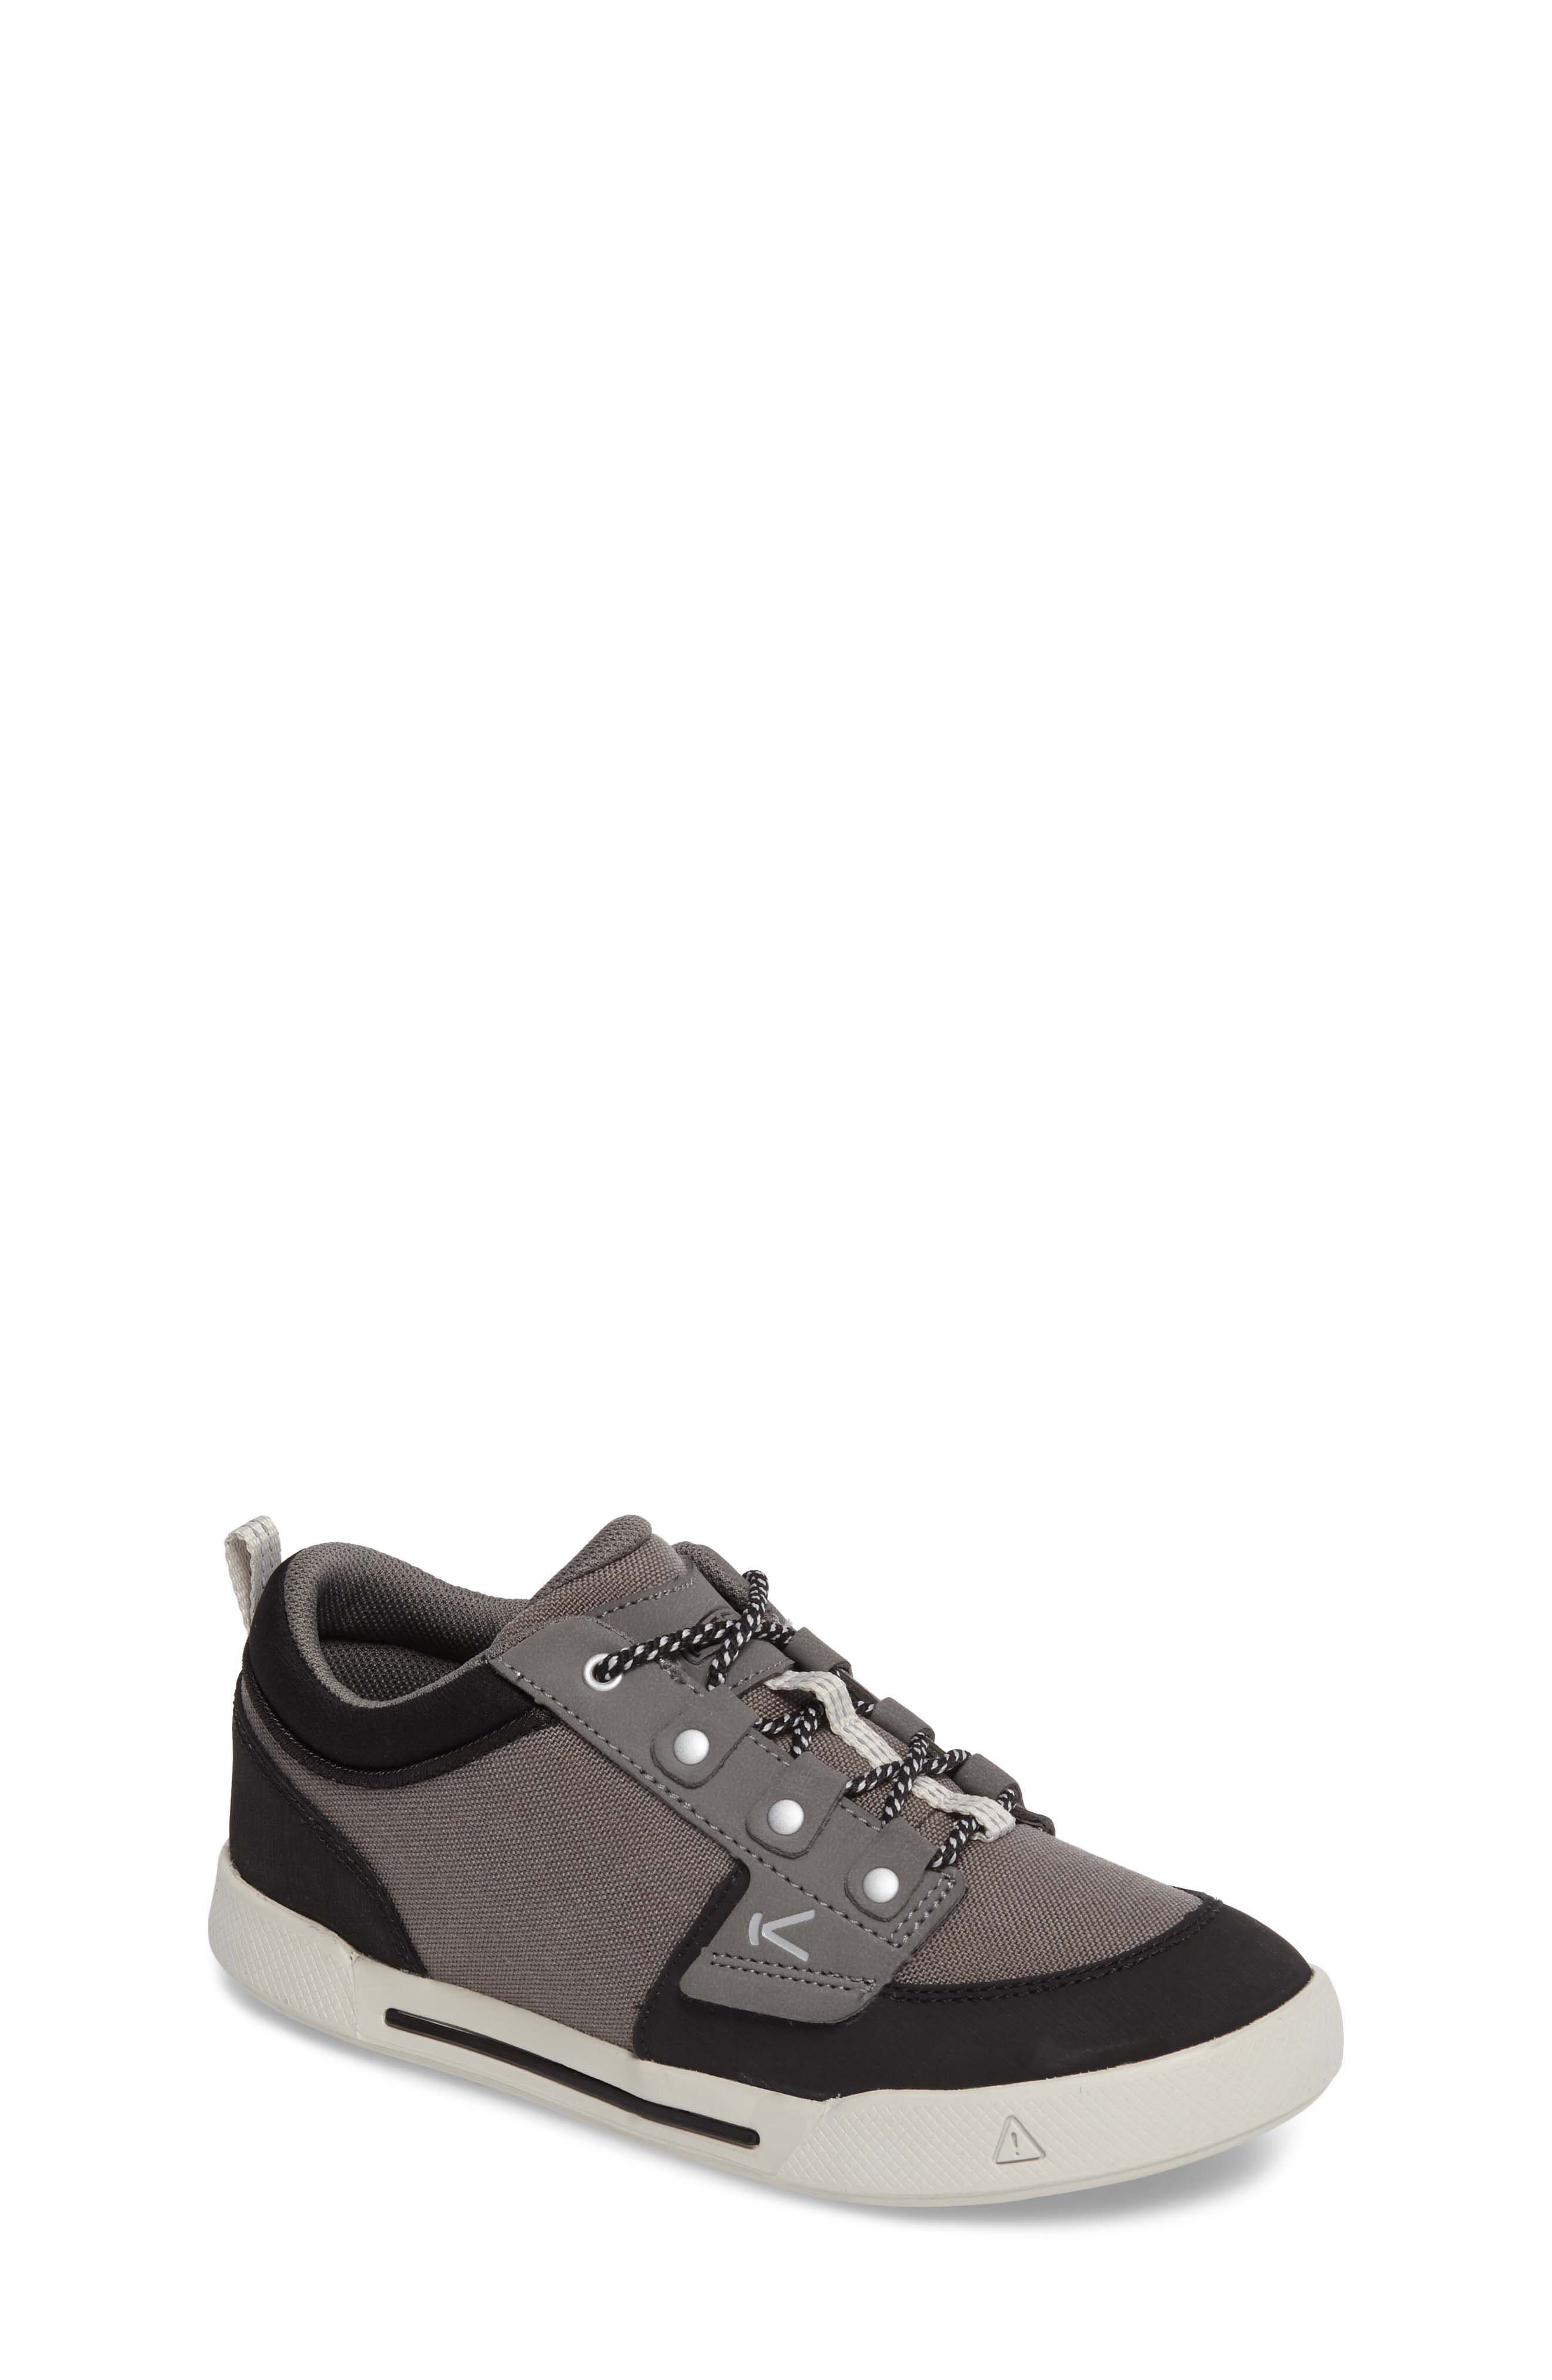 Alternate Image 1 Selected - Keen Encanto Wesley Sneaker (Toddler, Little Kid & Big Kid)